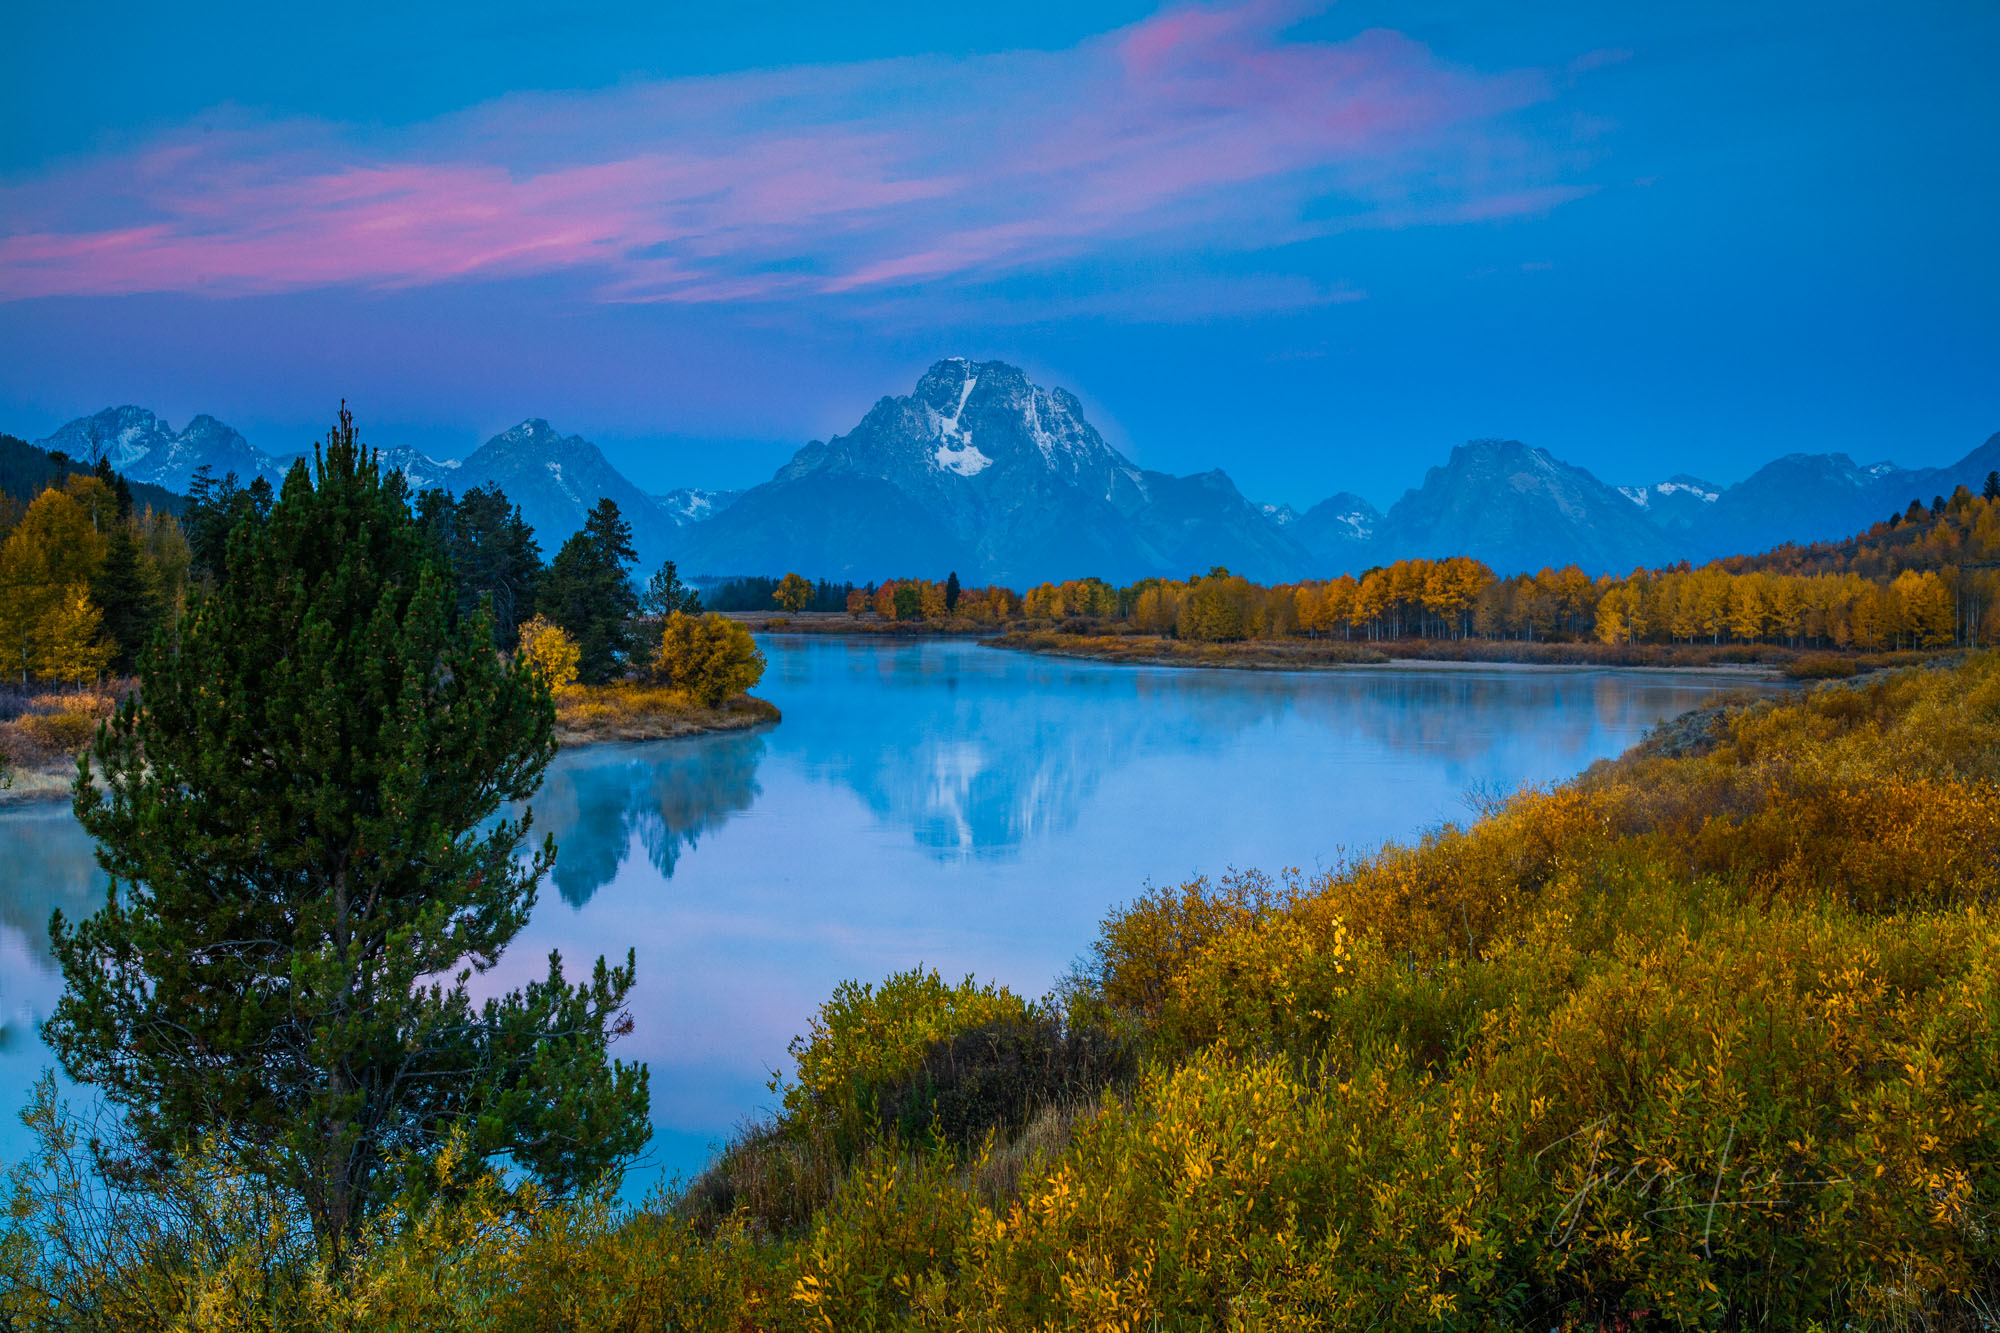 photo of Oxbow Bend in Wyoming, National Park photography, Grand Tetons, Jackson Hole, landscapes, autumn colors, reflection, Snake River, snow, sunset, mountain range, limited edition, high quality p, photo